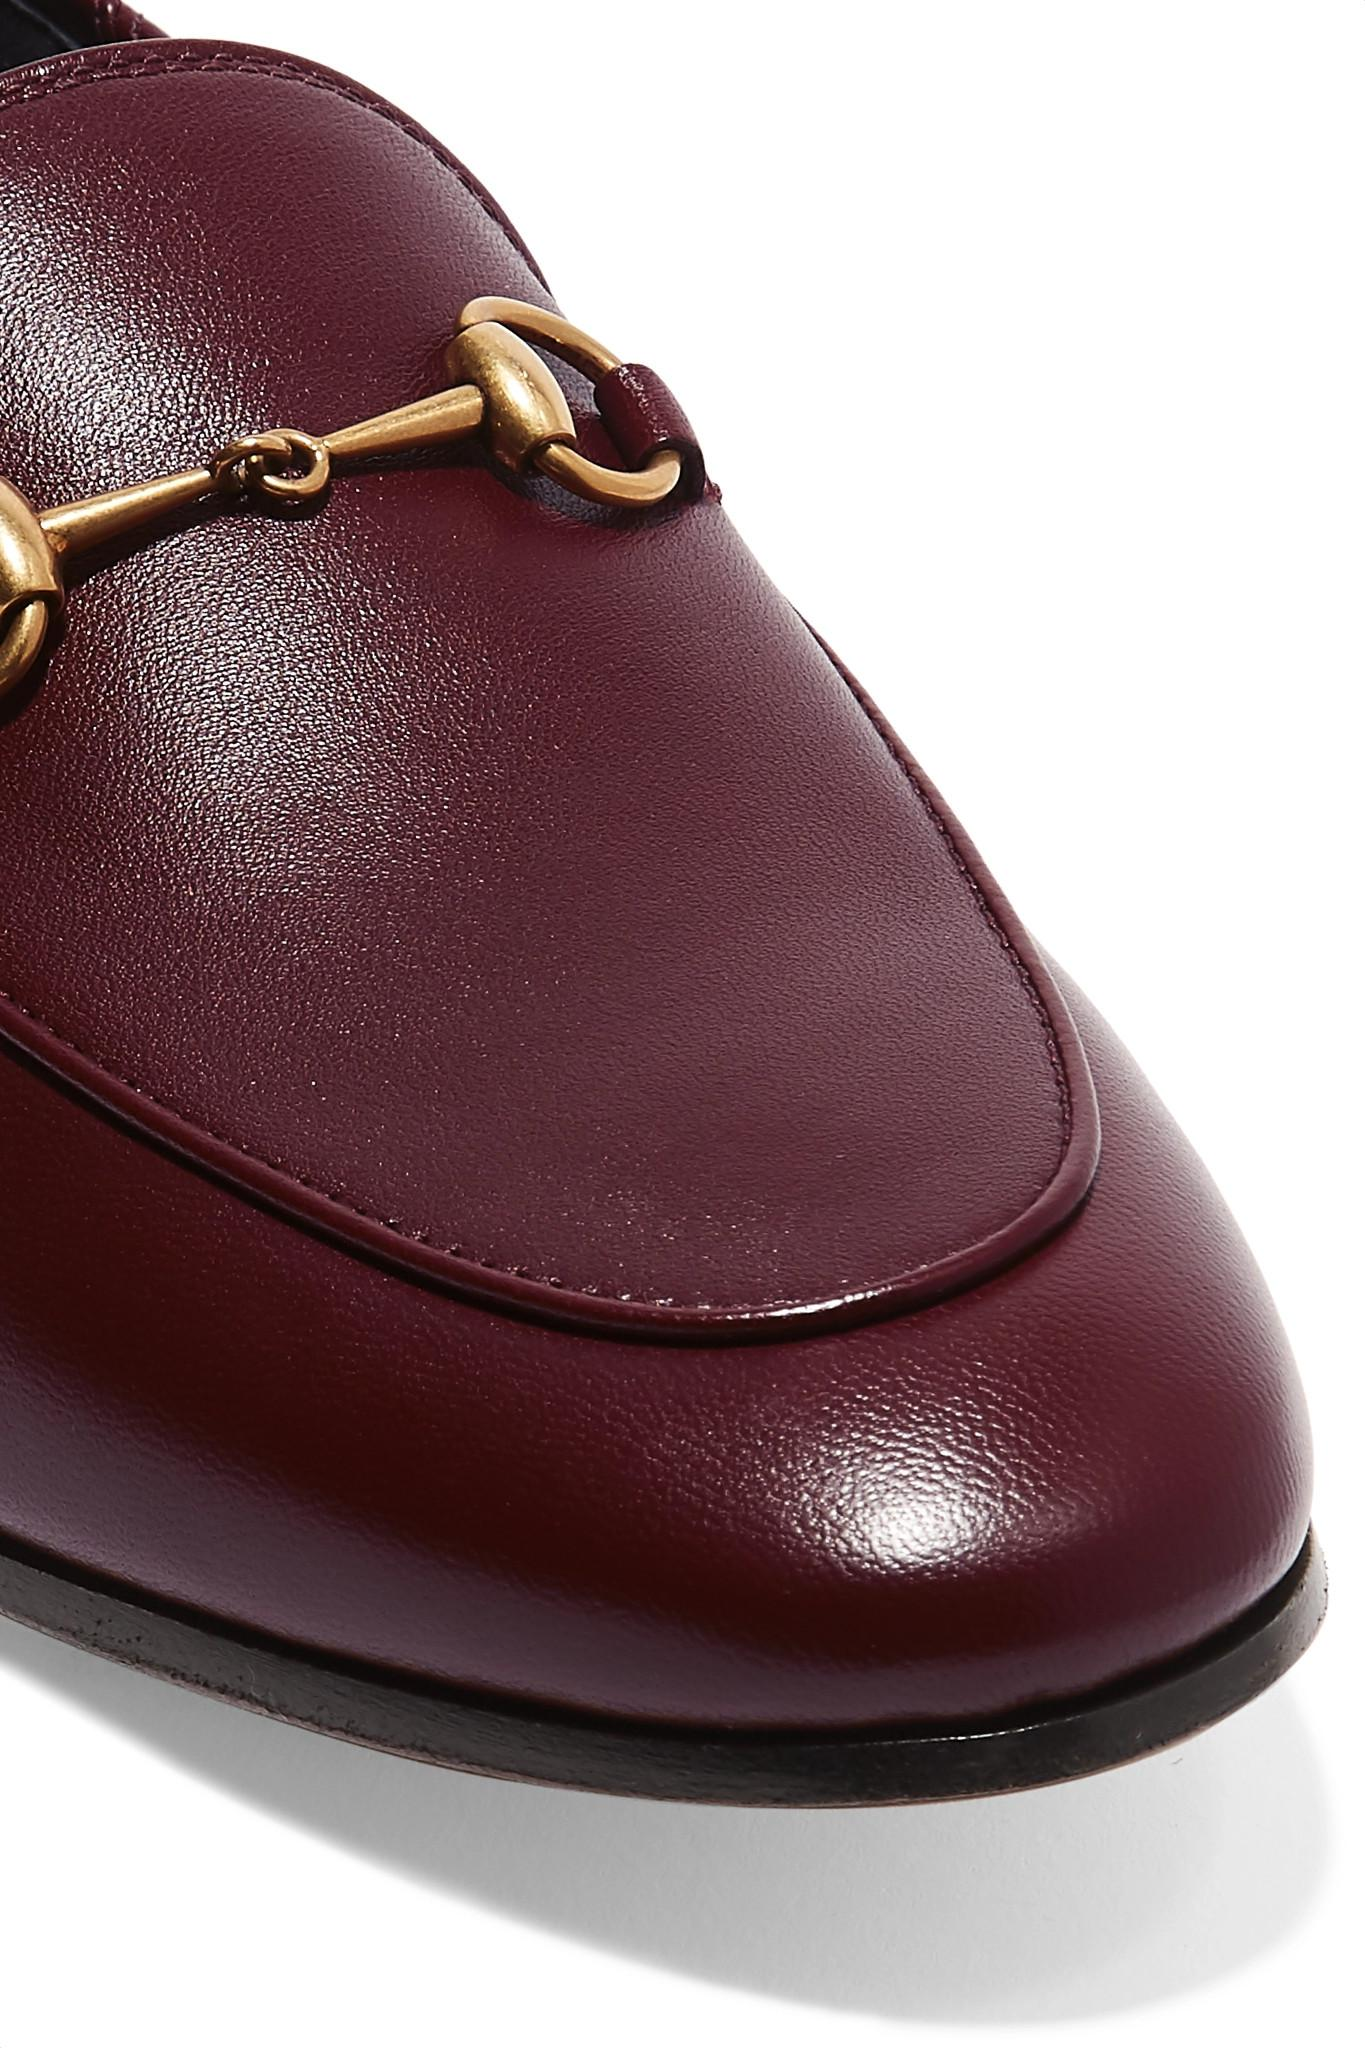 ef8a69c3c8e Gucci - Multicolor Brixton Horsebit-detailed Leather Collapsible-heel  Loafers - Lyst. View fullscreen